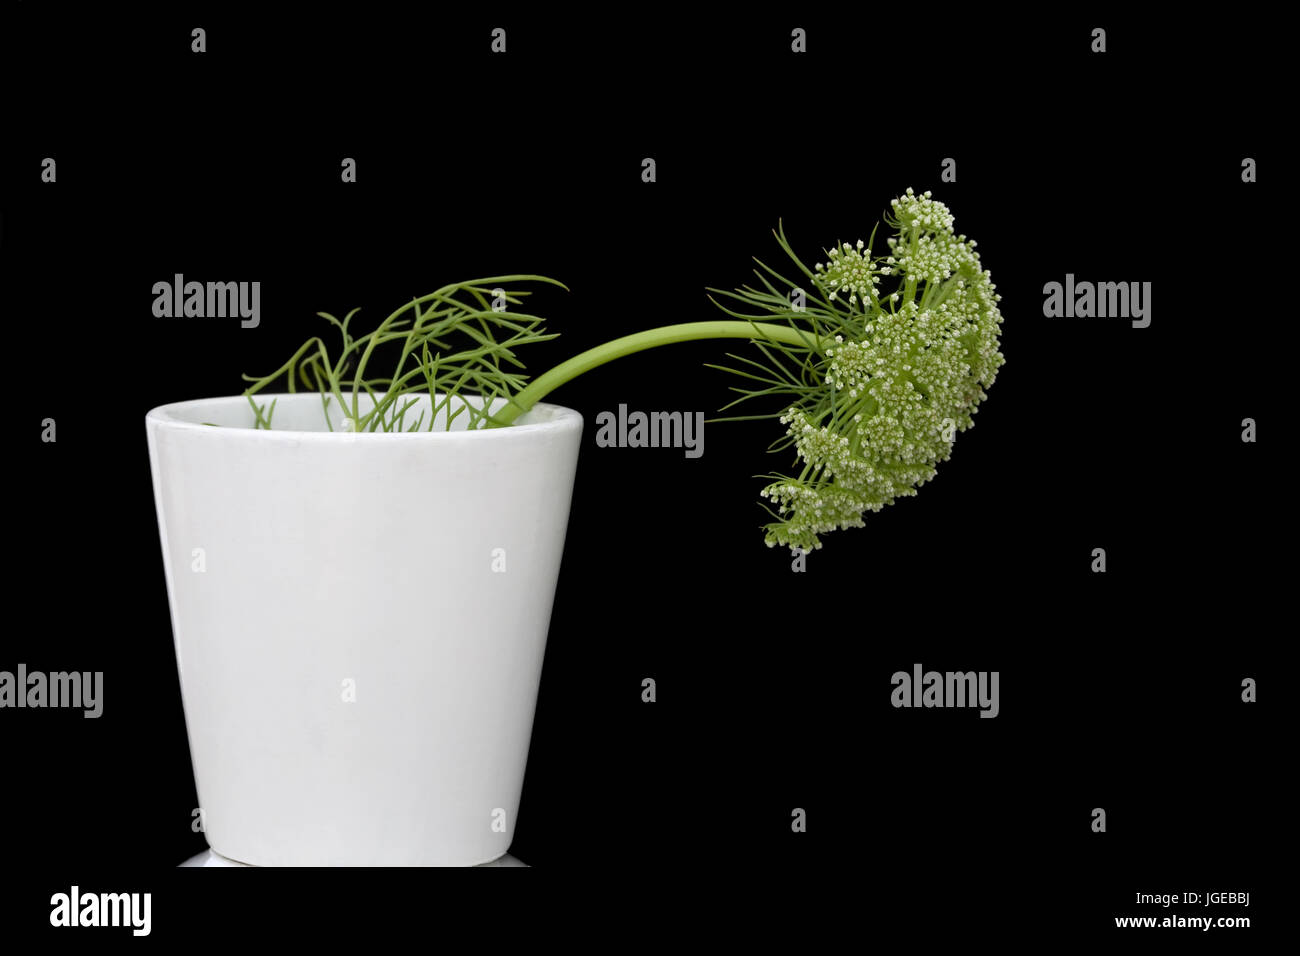 Minimal Still life - Dill flower in white pot.  Ammi majus in white pot on black back ground. Stock Photo